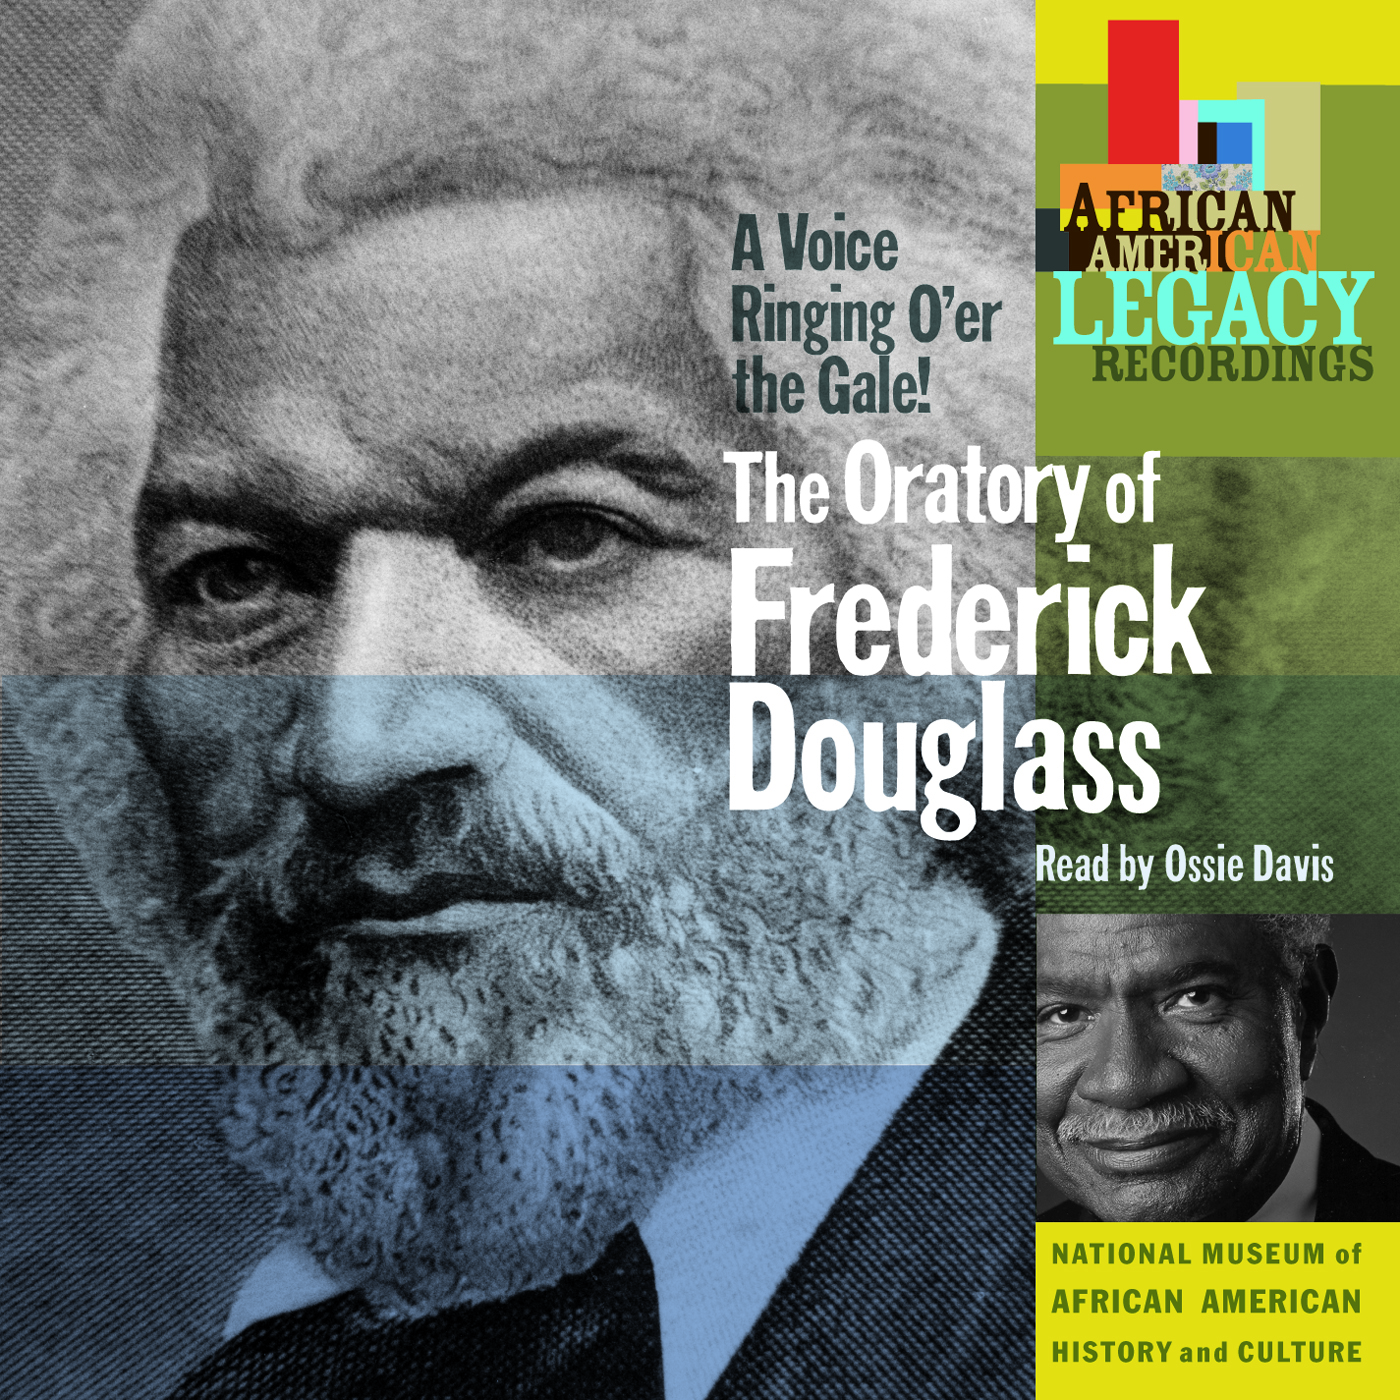 a biography and life work of frederick douglass an african american orator and author of the 19th ce